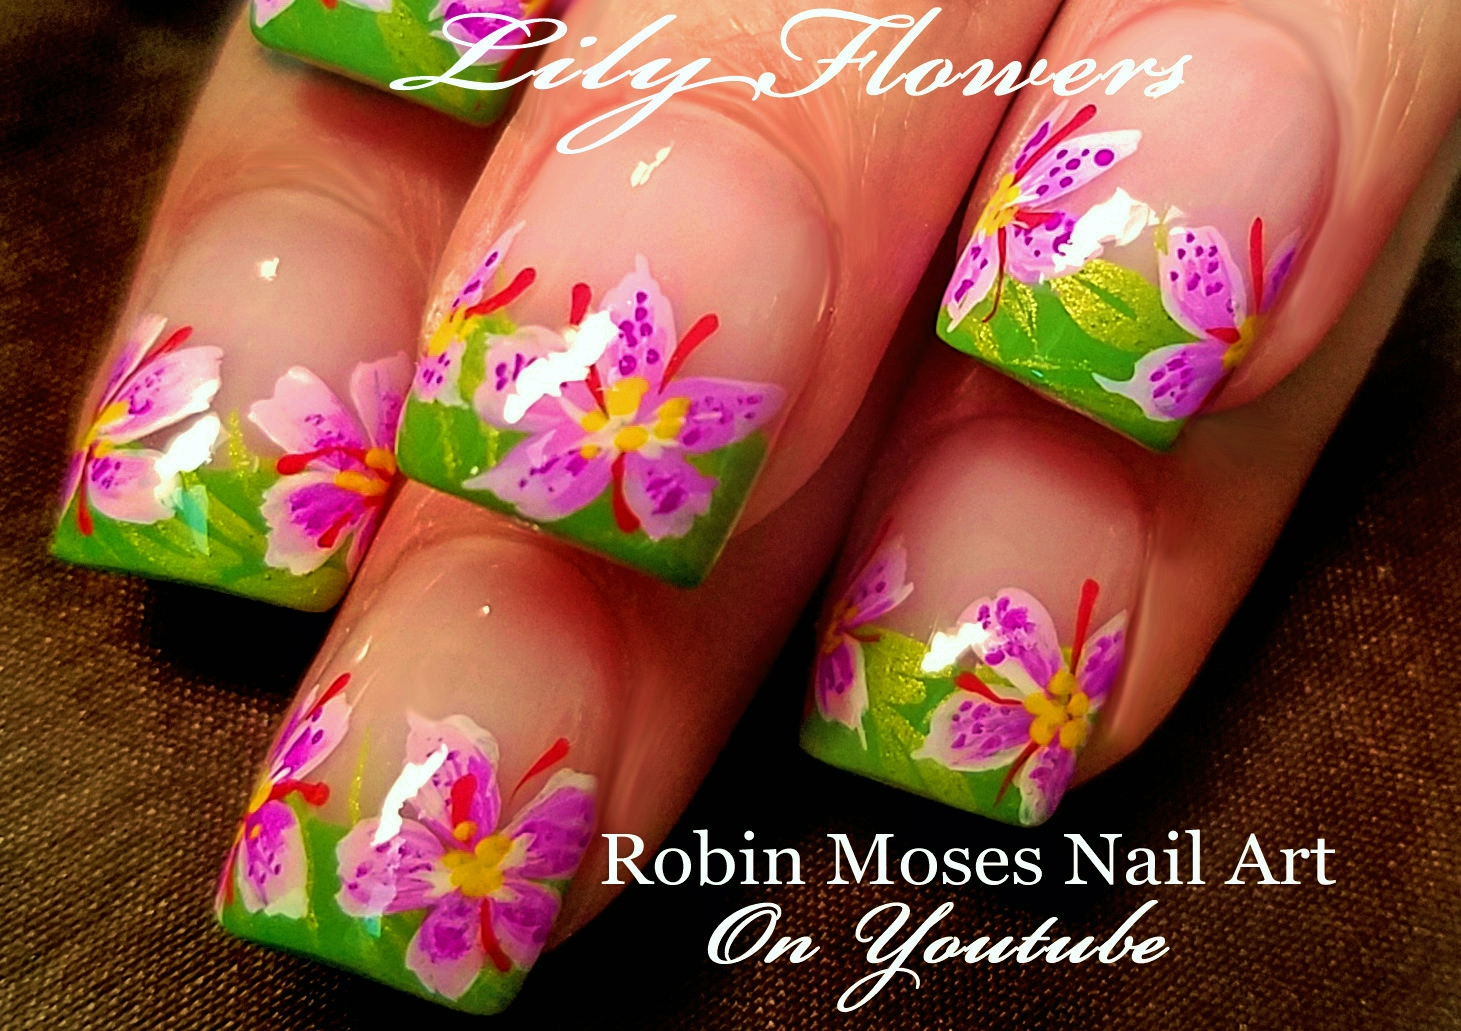 Nail Art By Robin Moses Lily Flower Nail Art Design Tutorial Lily